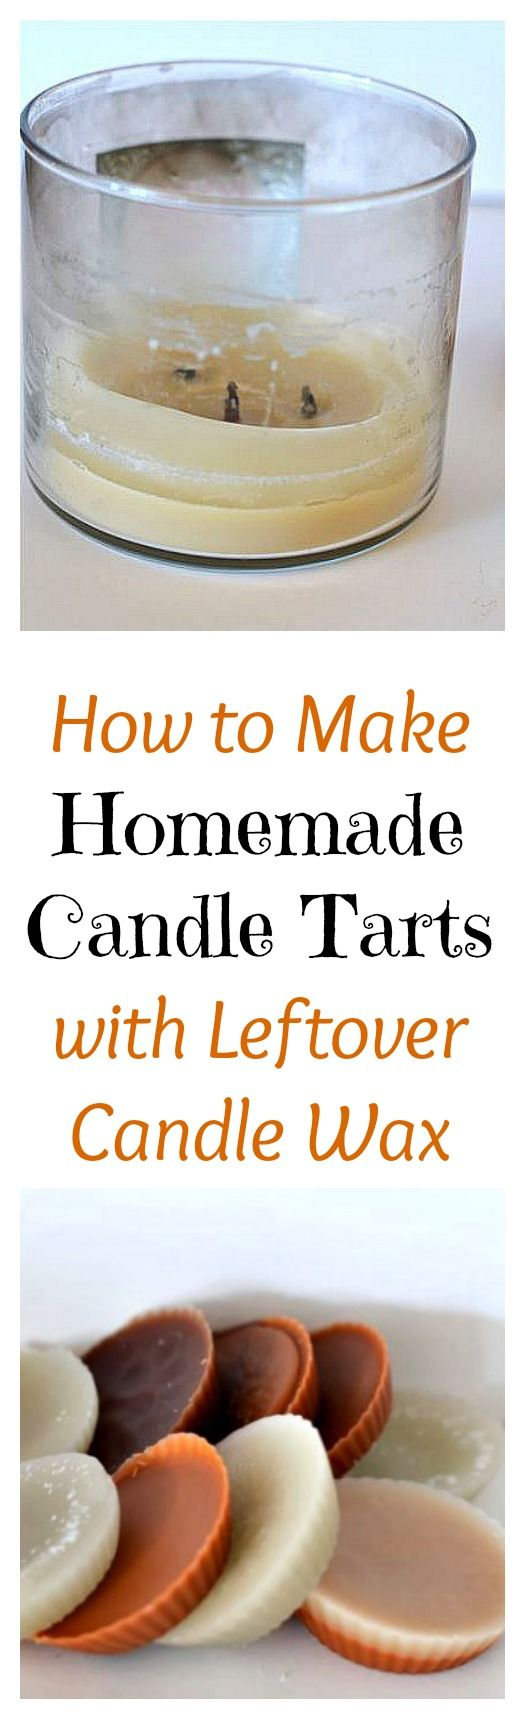 Save money with this easy DIY upcycling trick! Learn How to Make Homemade Candle Tarts with Leftover Candle Wax